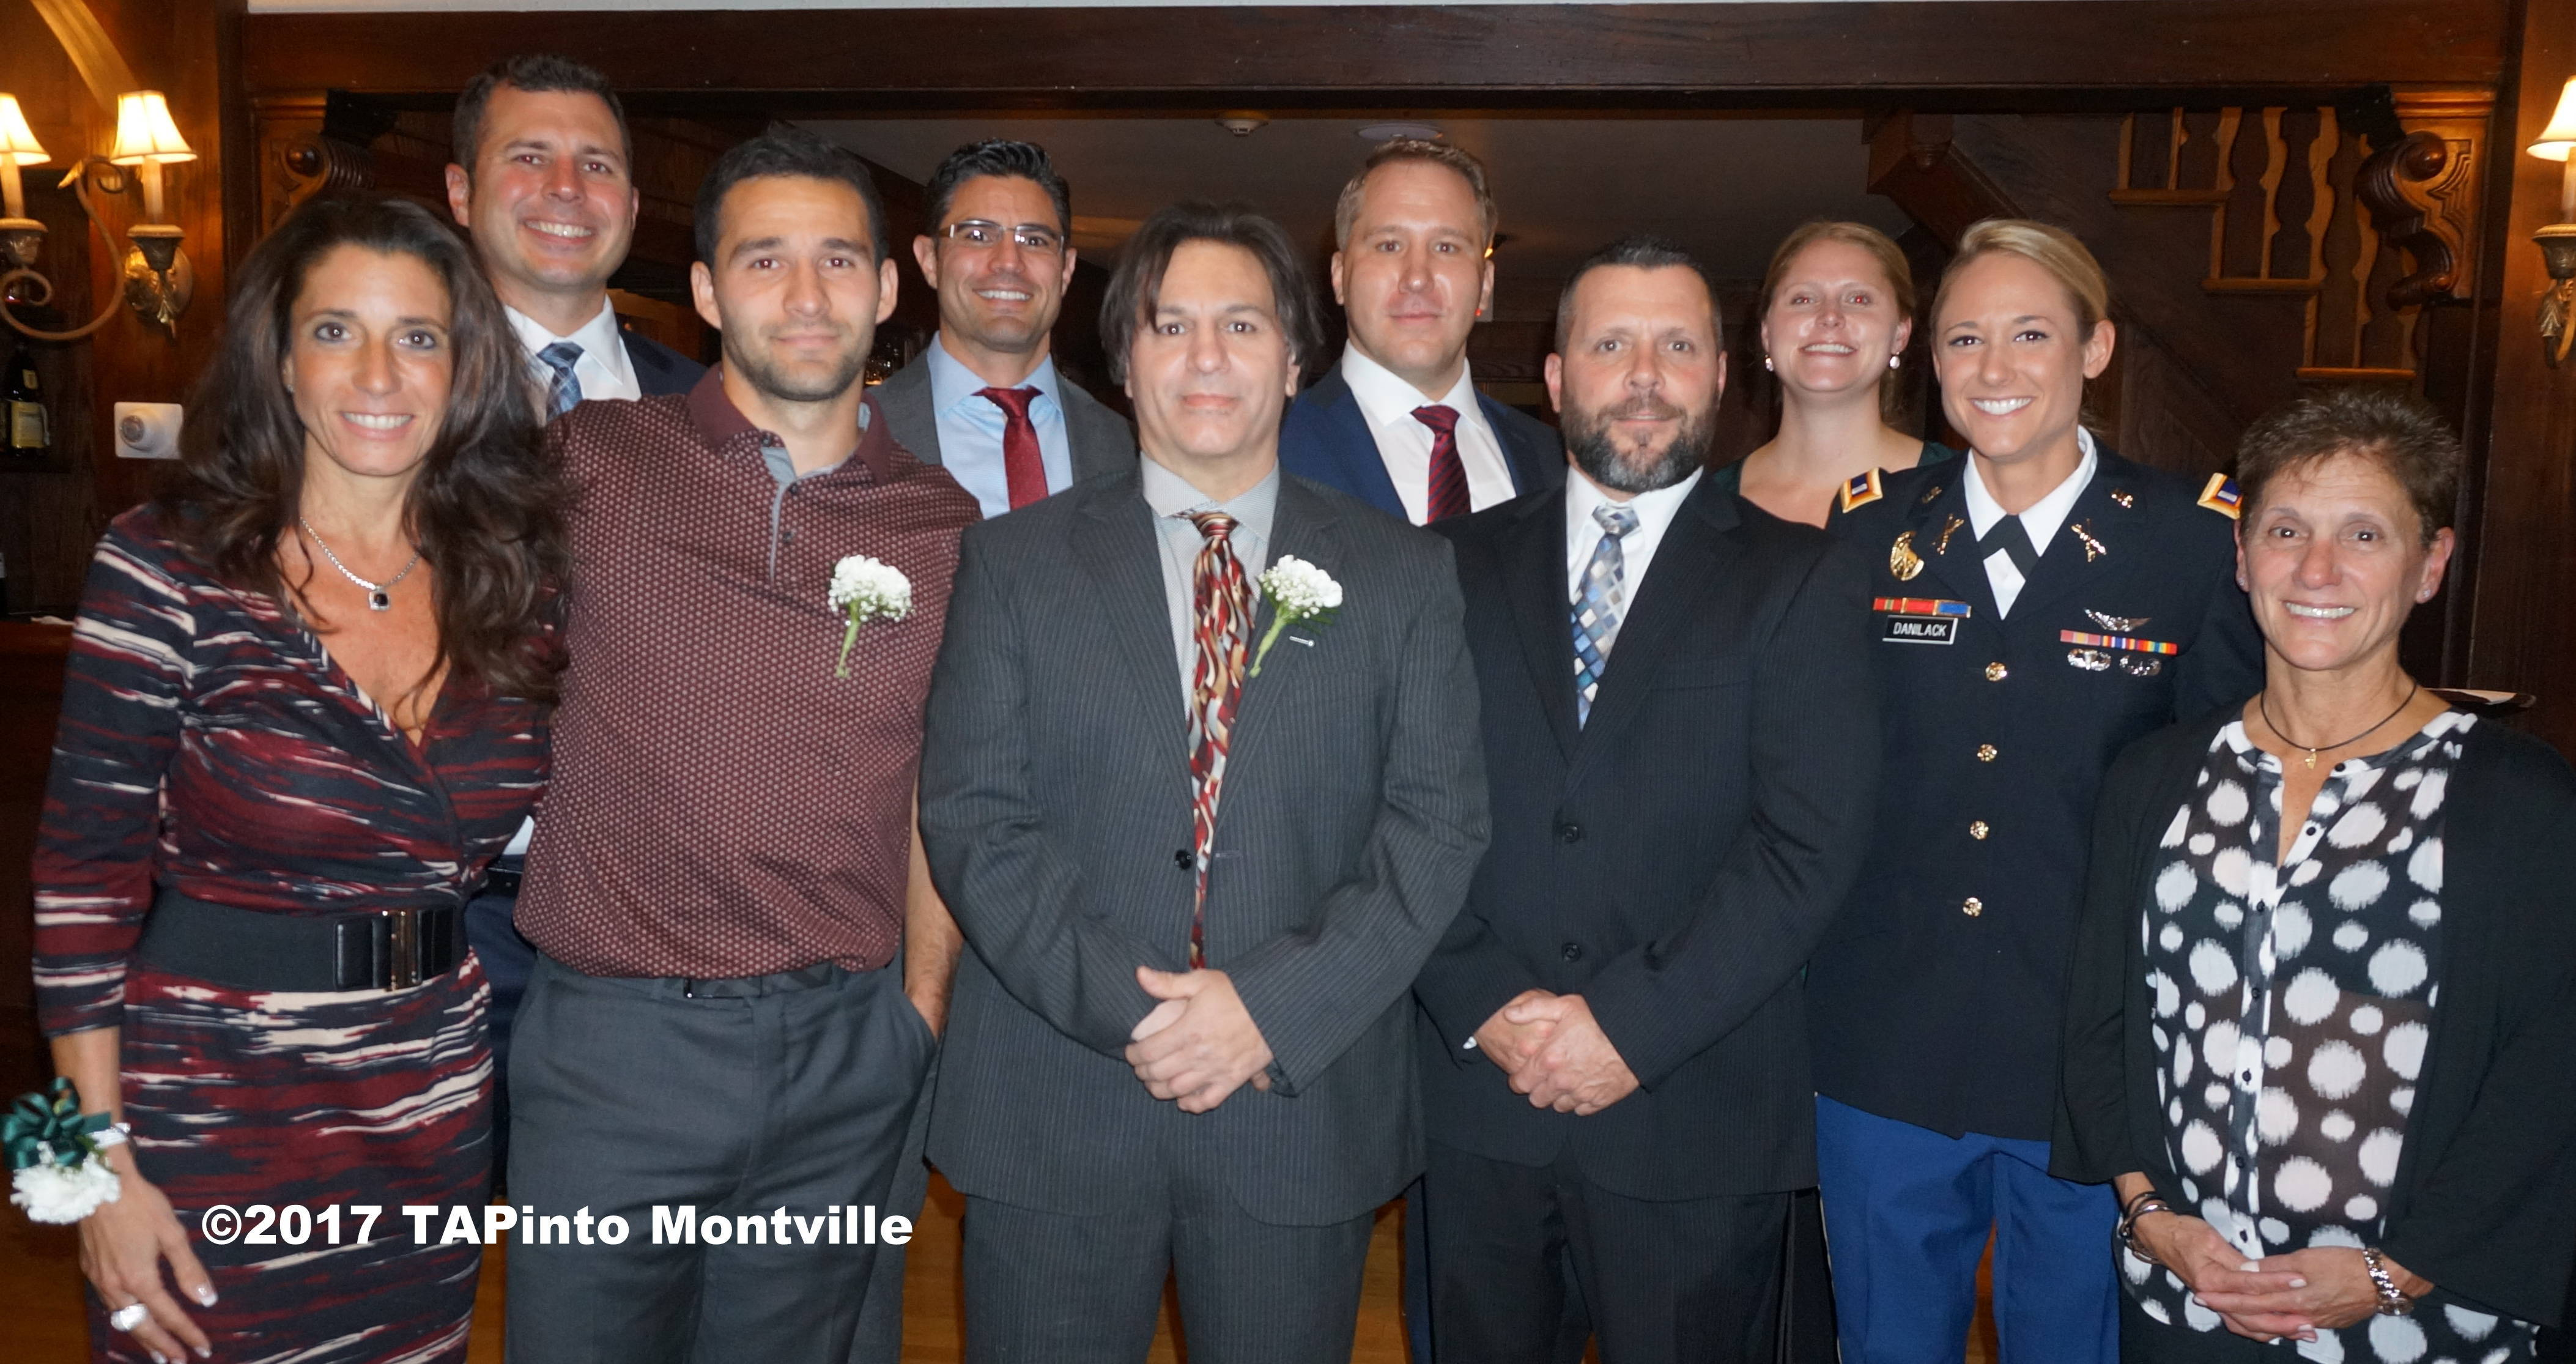 5ced959582c533d2bda1_a_Montville_Hall_of_Fame_Inductees_2017__2017_TAPinto_Montville.JPG